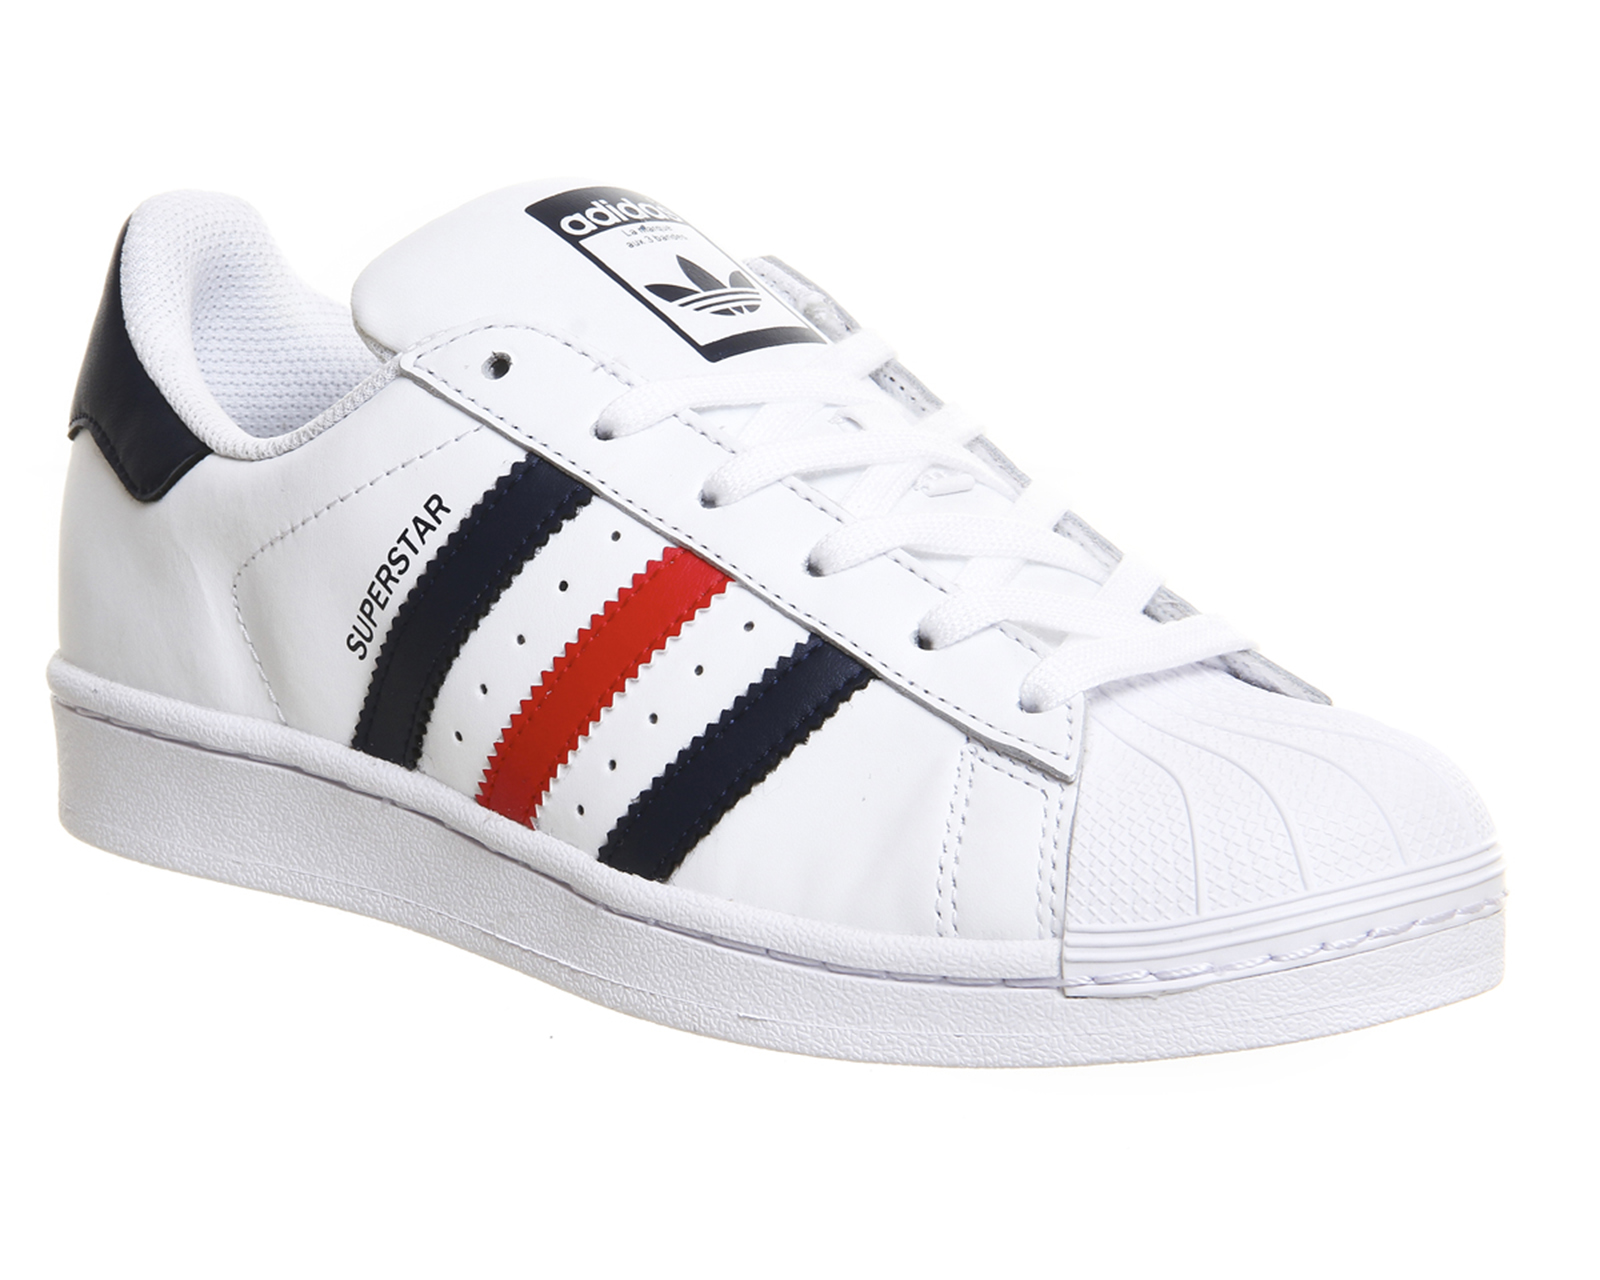 mens adidas superstar 1 white collegiate navy red trainers. Black Bedroom Furniture Sets. Home Design Ideas